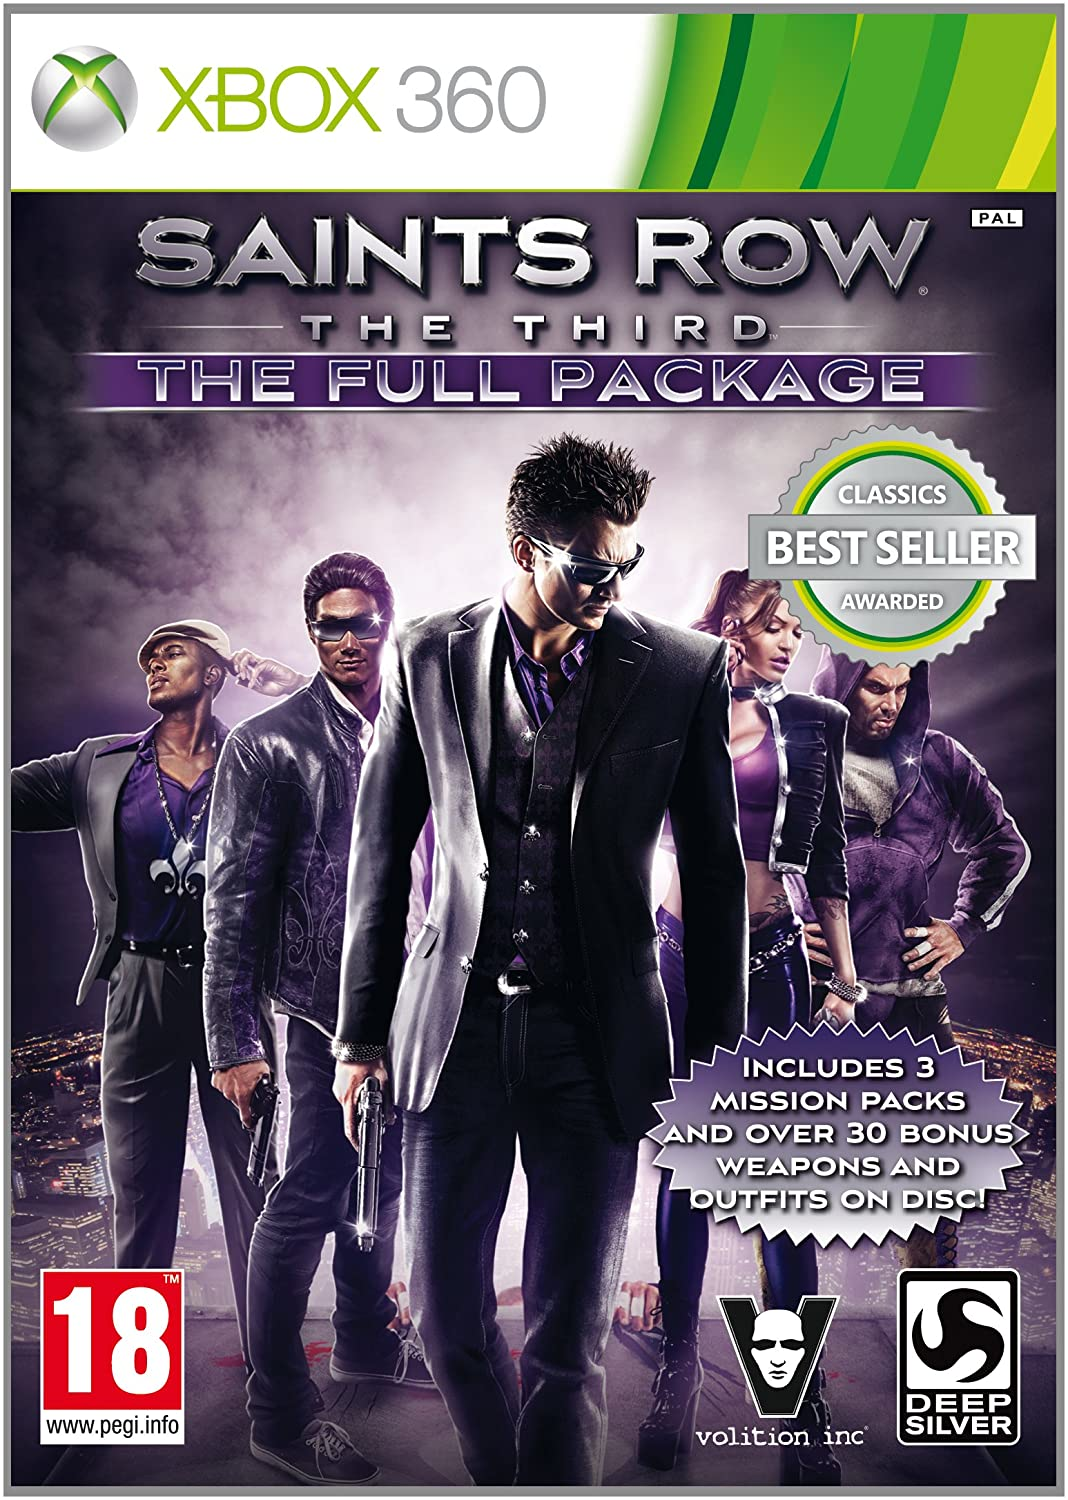 Saints Row The Third French, Italian, German, Spanish, Dutch, Japanese, Korean, Russian, Polish, and Czech Xbox 360, PS3, and PC